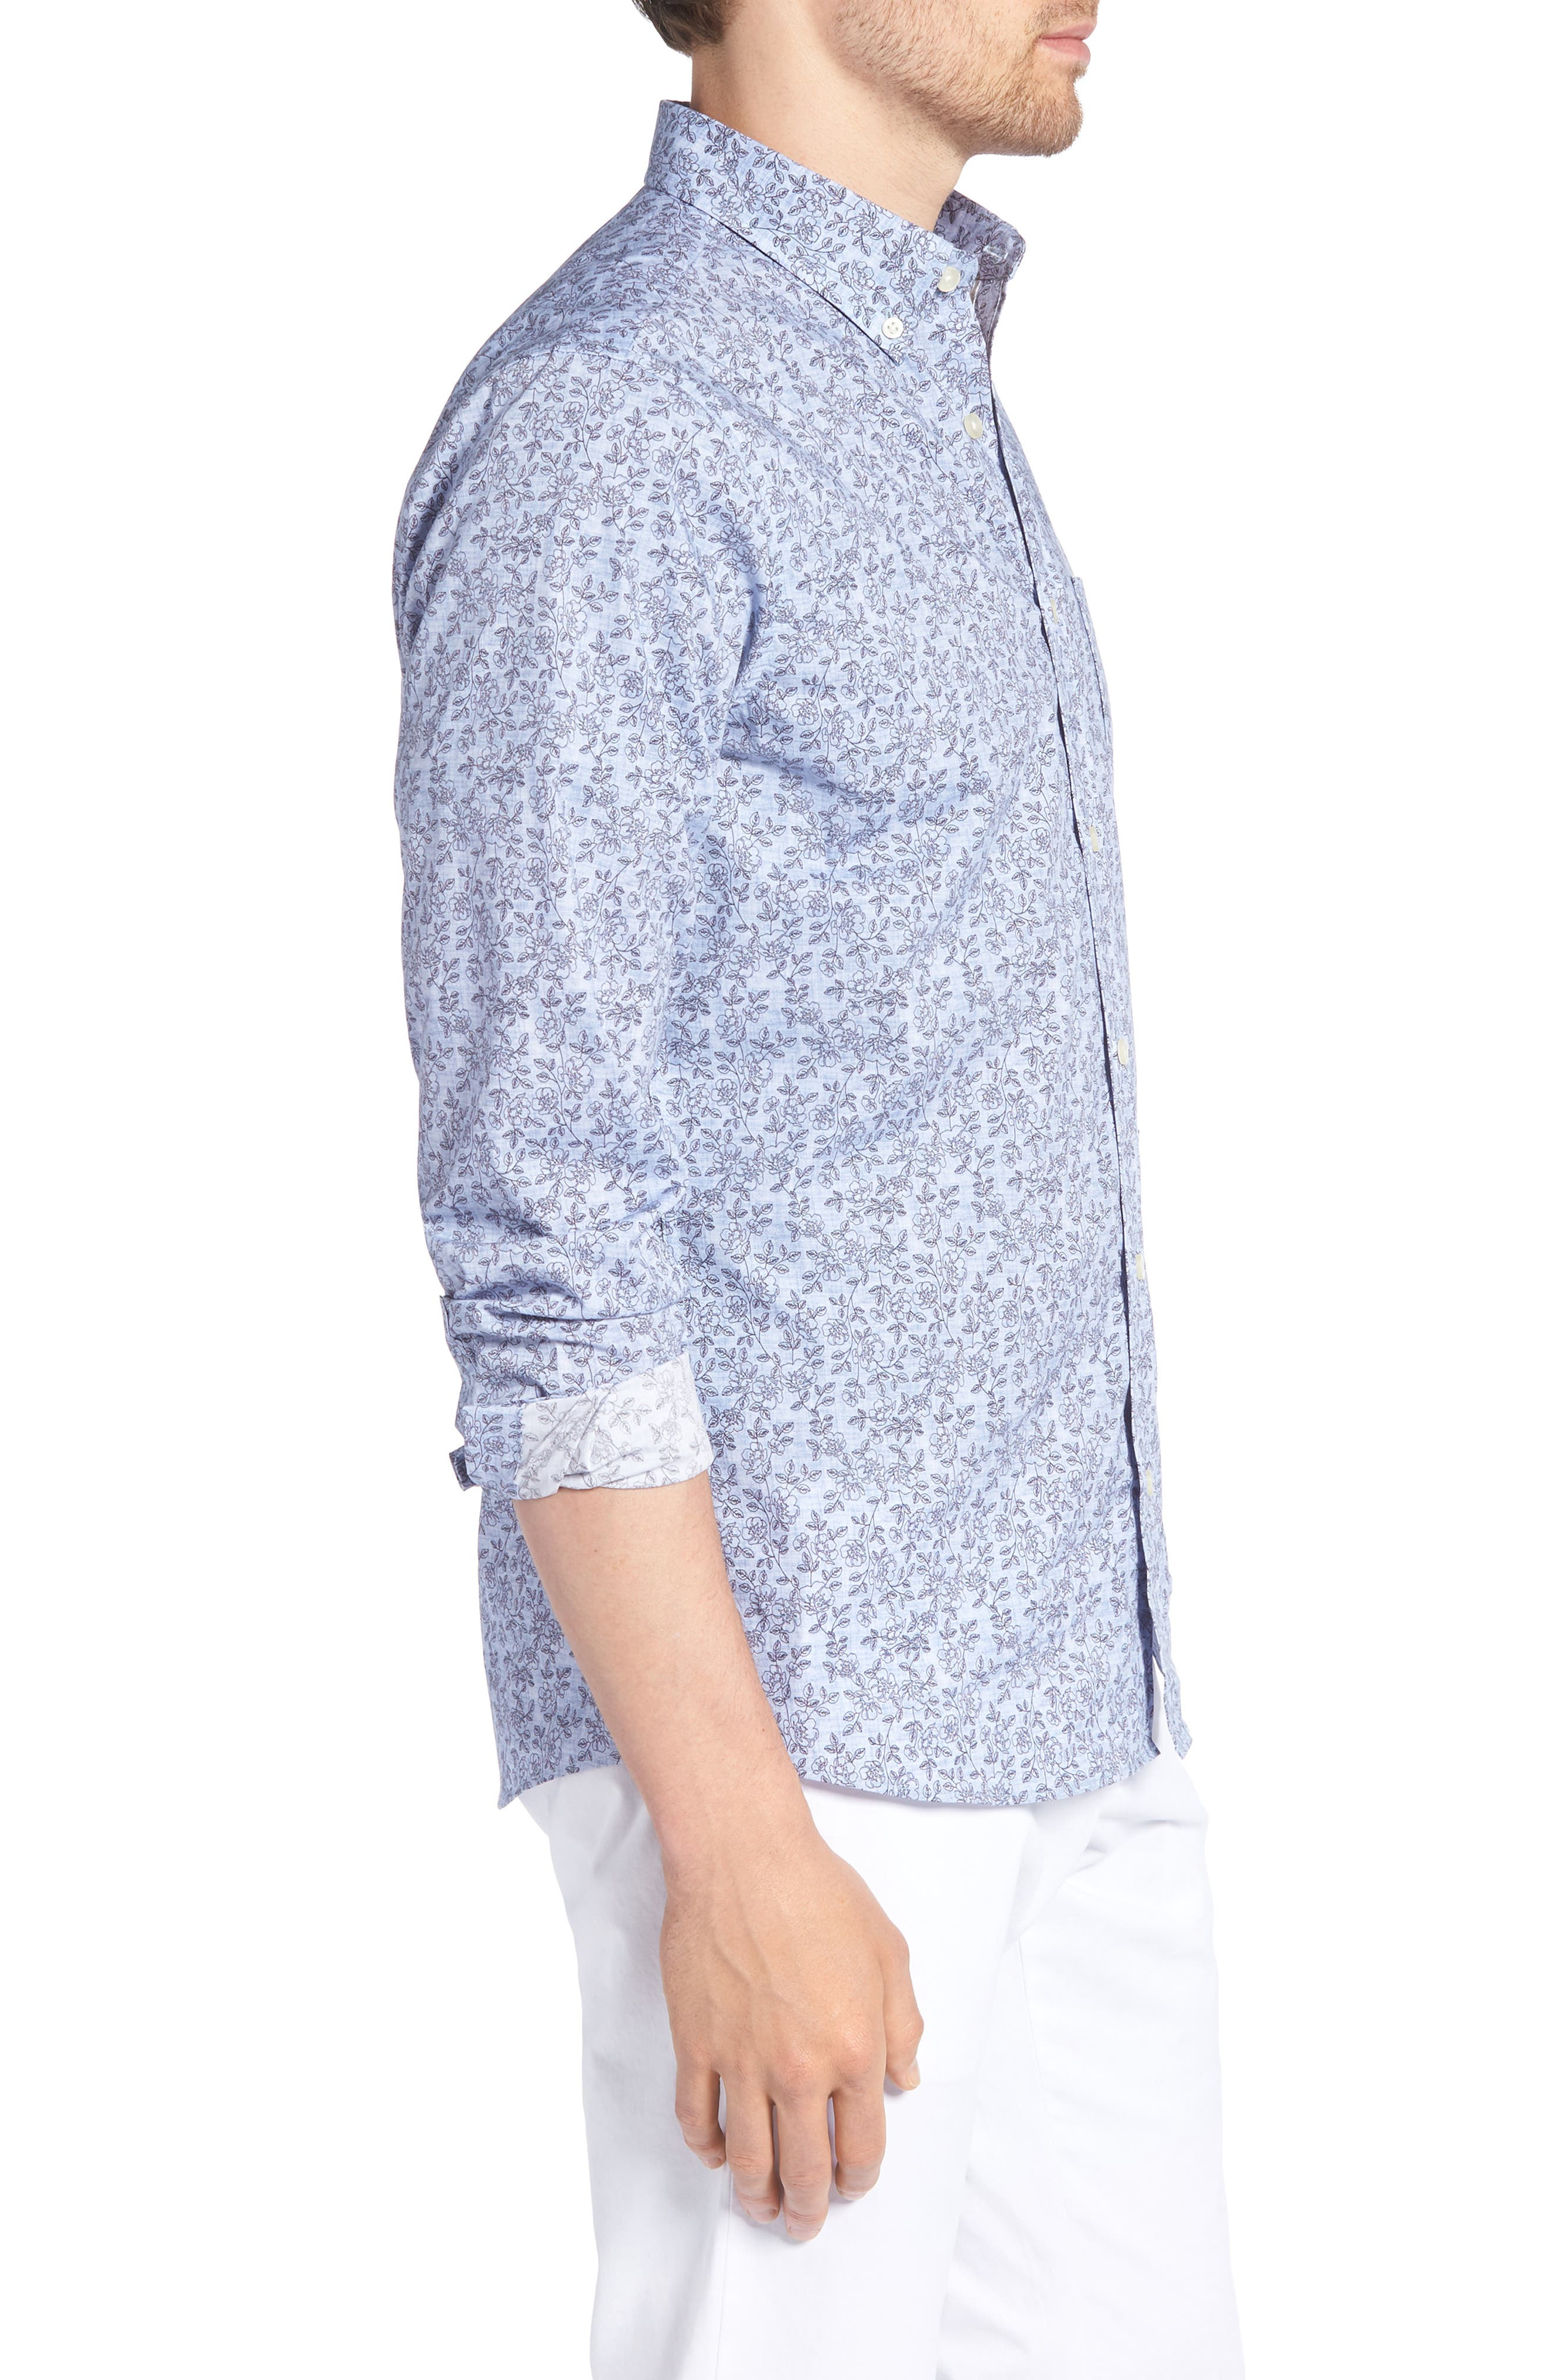 Trim Fit Chambray Floral Print Sport Shirt,                             Alternate thumbnail 4, color,                             Chambray Flower Print